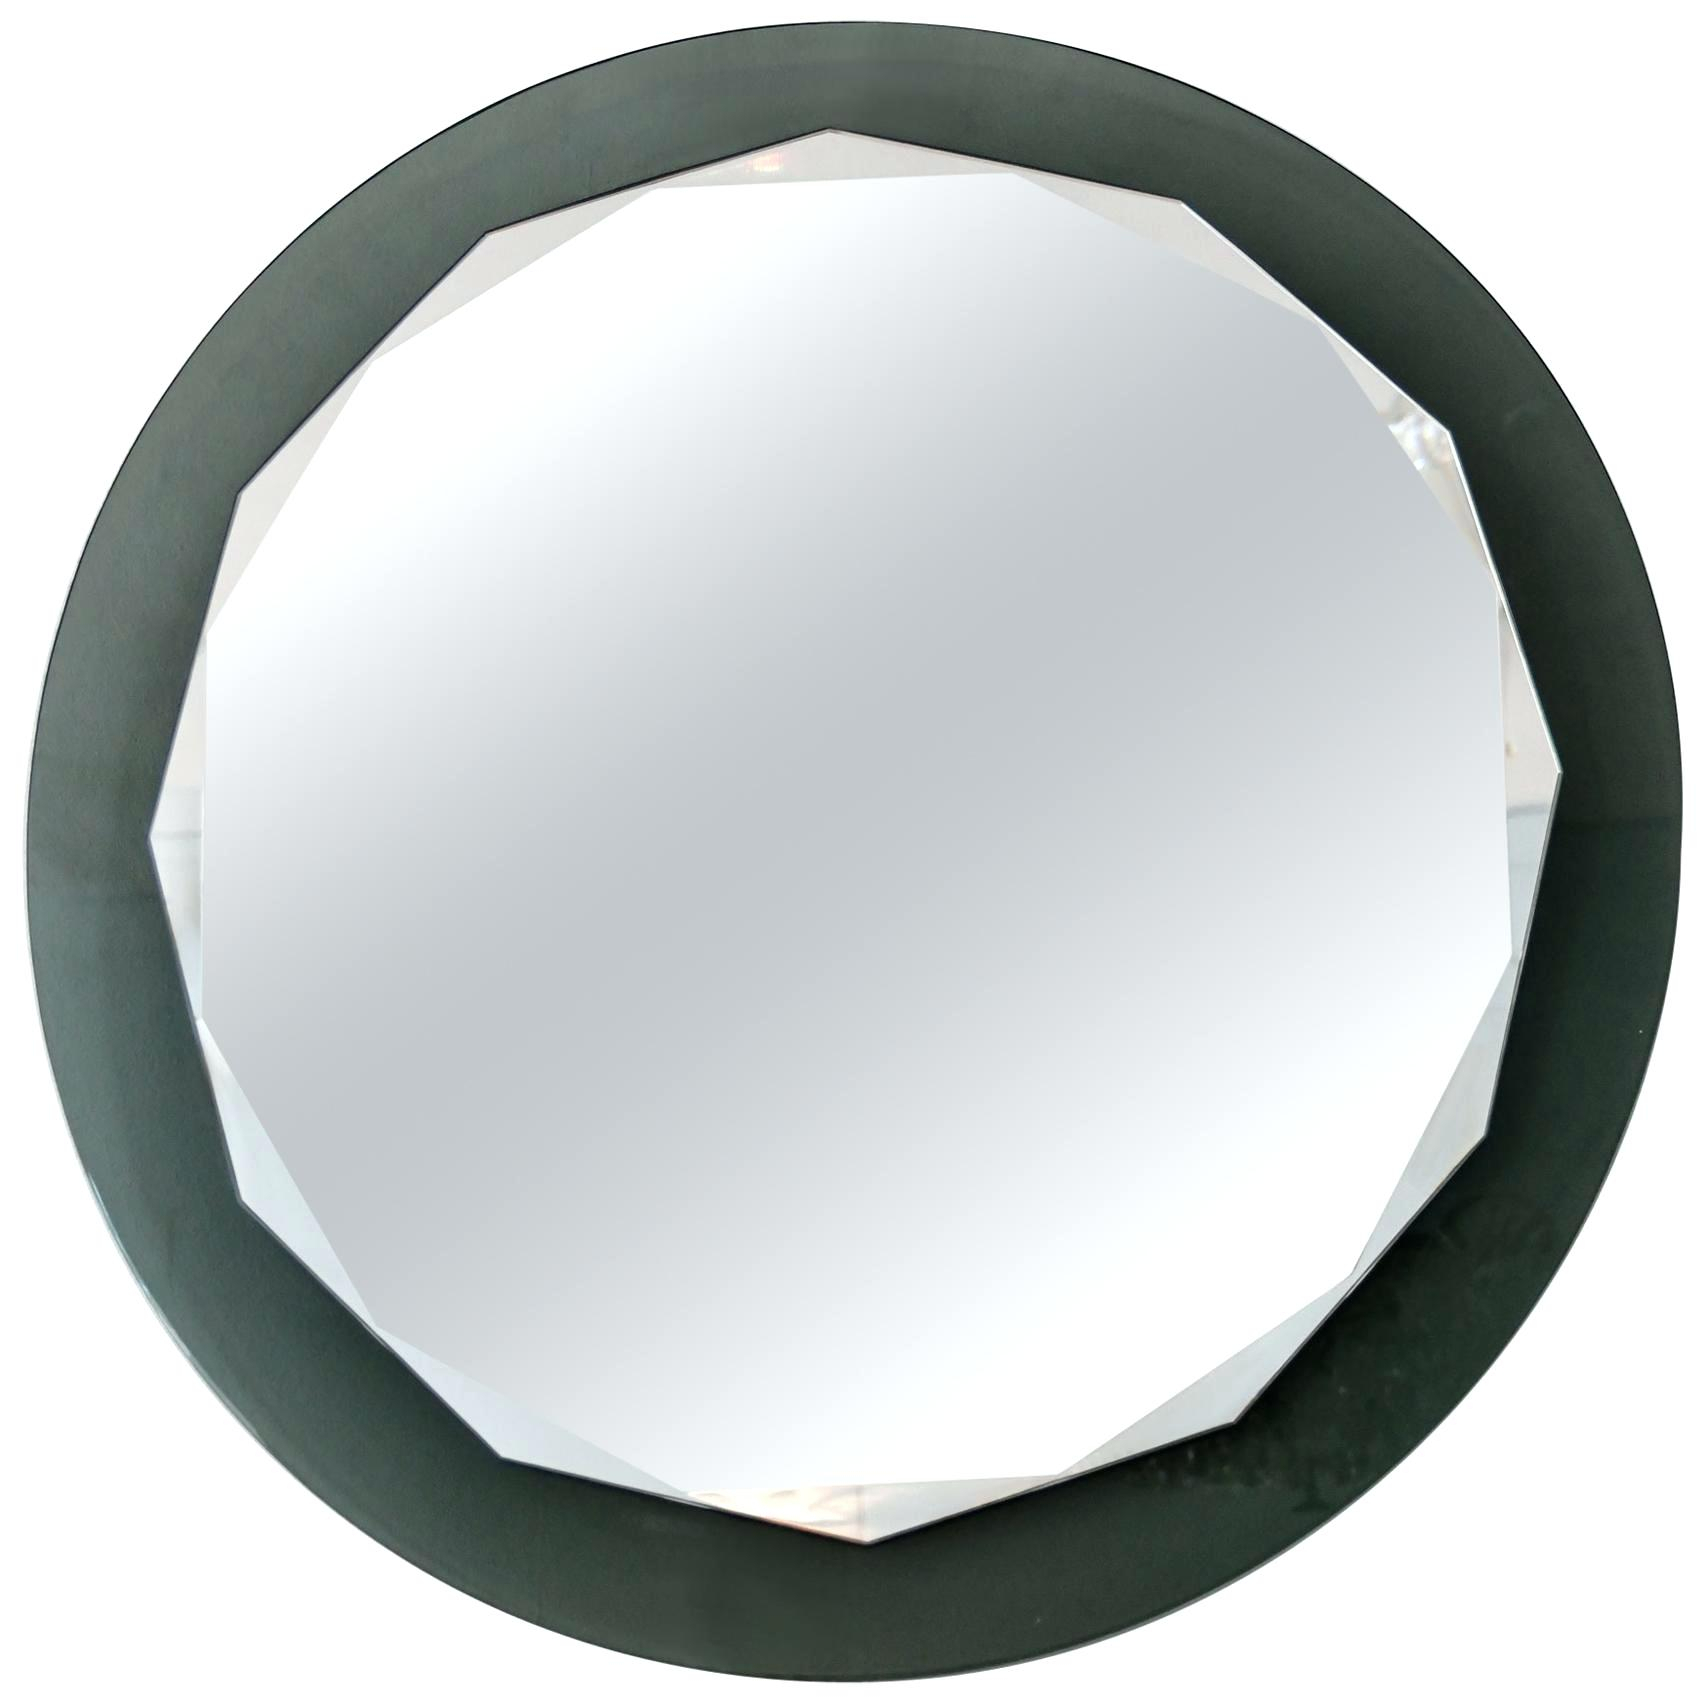 Contemporary Scalloped Wall Mirror Oval Frame – Centrorg Pertaining To Reign Frameless Oval Scalloped Beveled Wall Mirrors (Image 5 of 20)